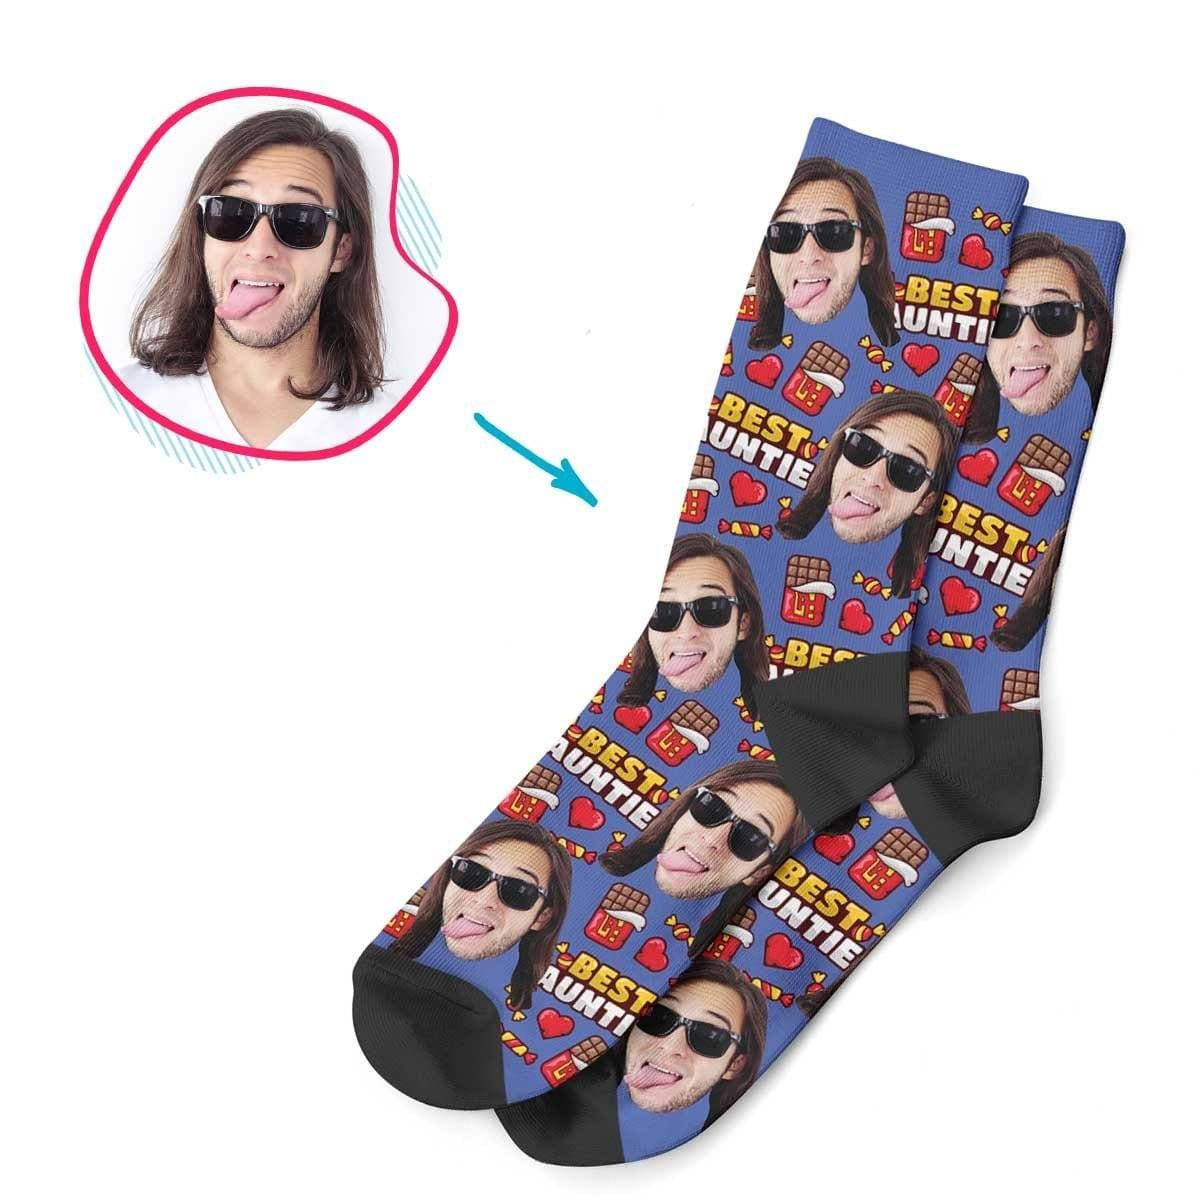 Darkblue Auntie personalized socks with photo of face printed on them